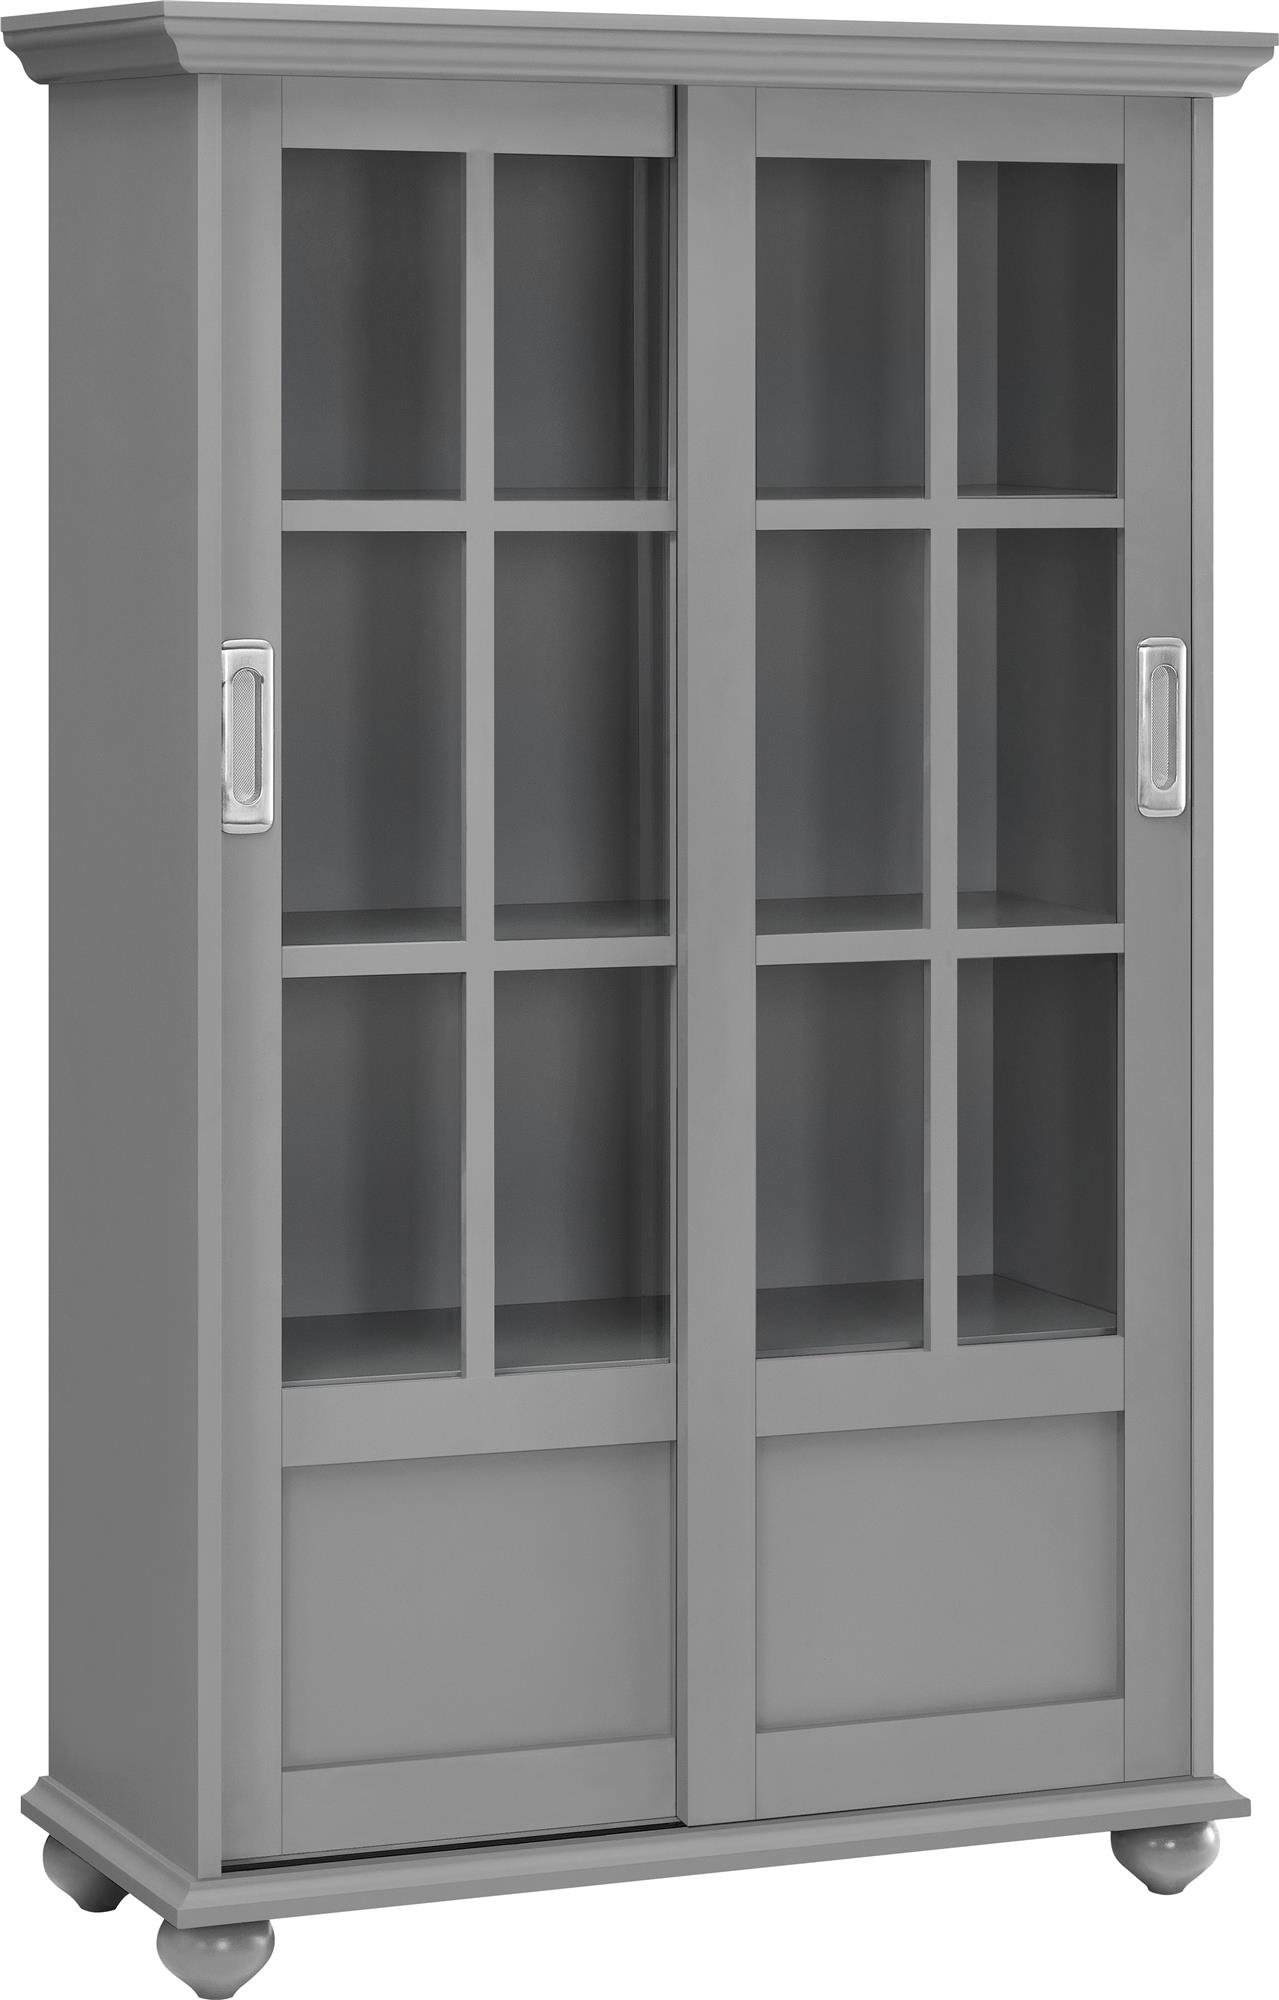 Ameriwood Home Aaron Lane Bookcase with Sliding Glass Doors, Soft Gray